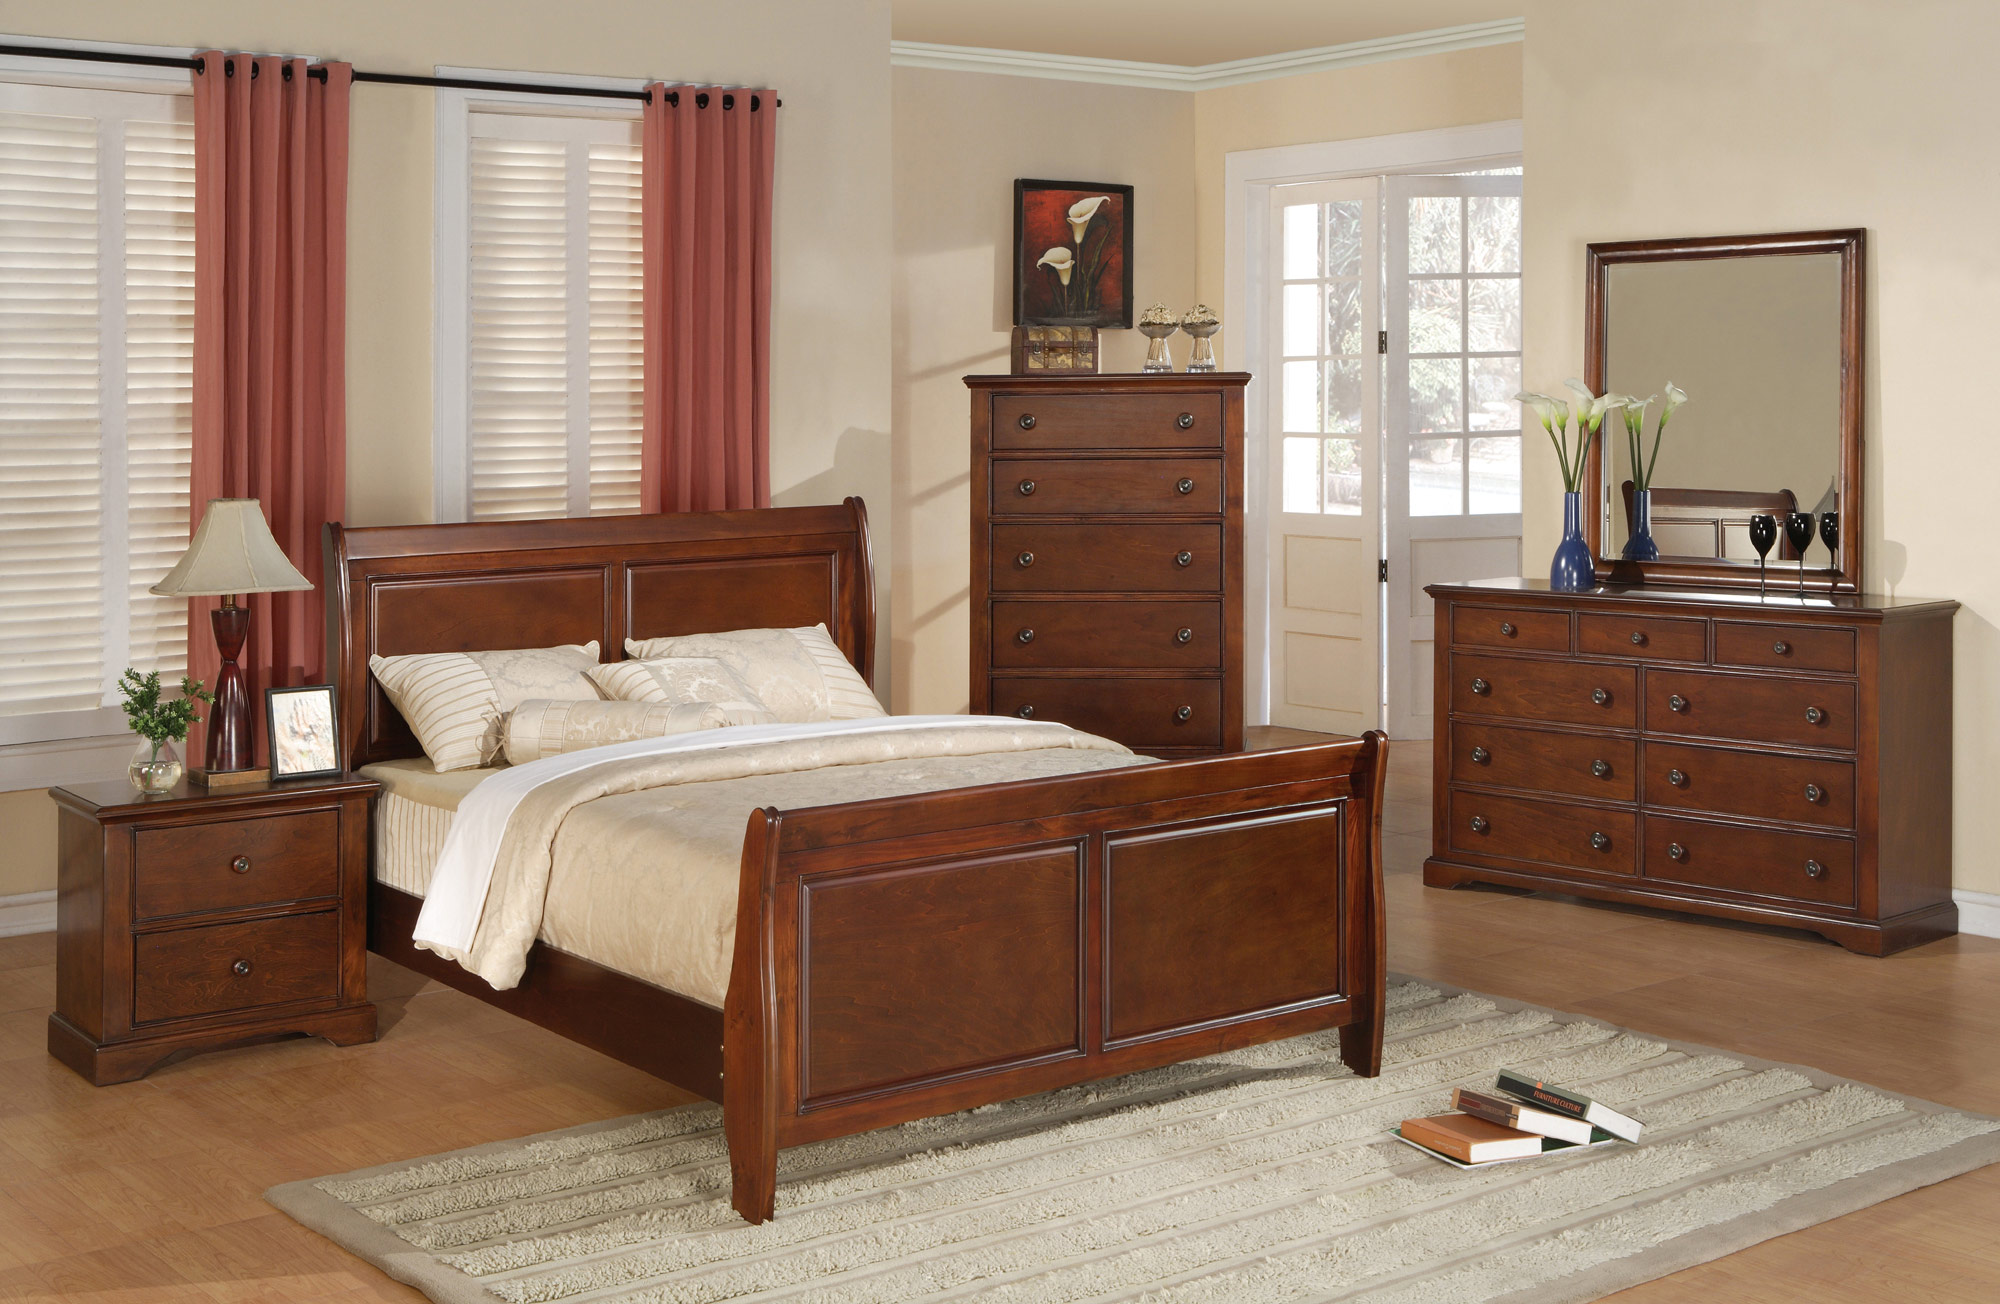 Chablis Queen Sleigh Bed Bernards Home Gallery Stores